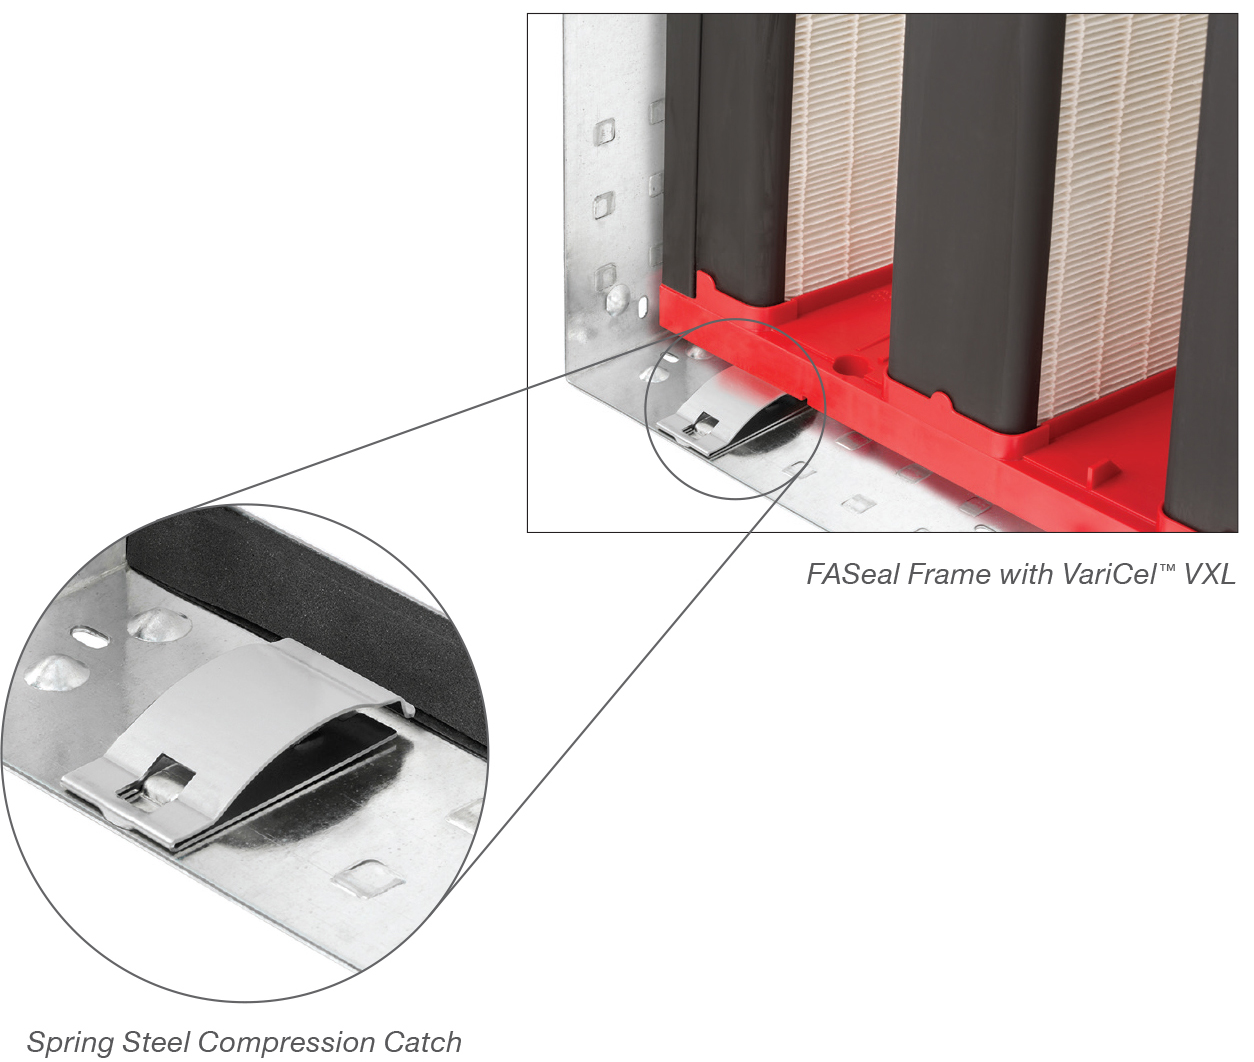 FASeal Frame compression catch